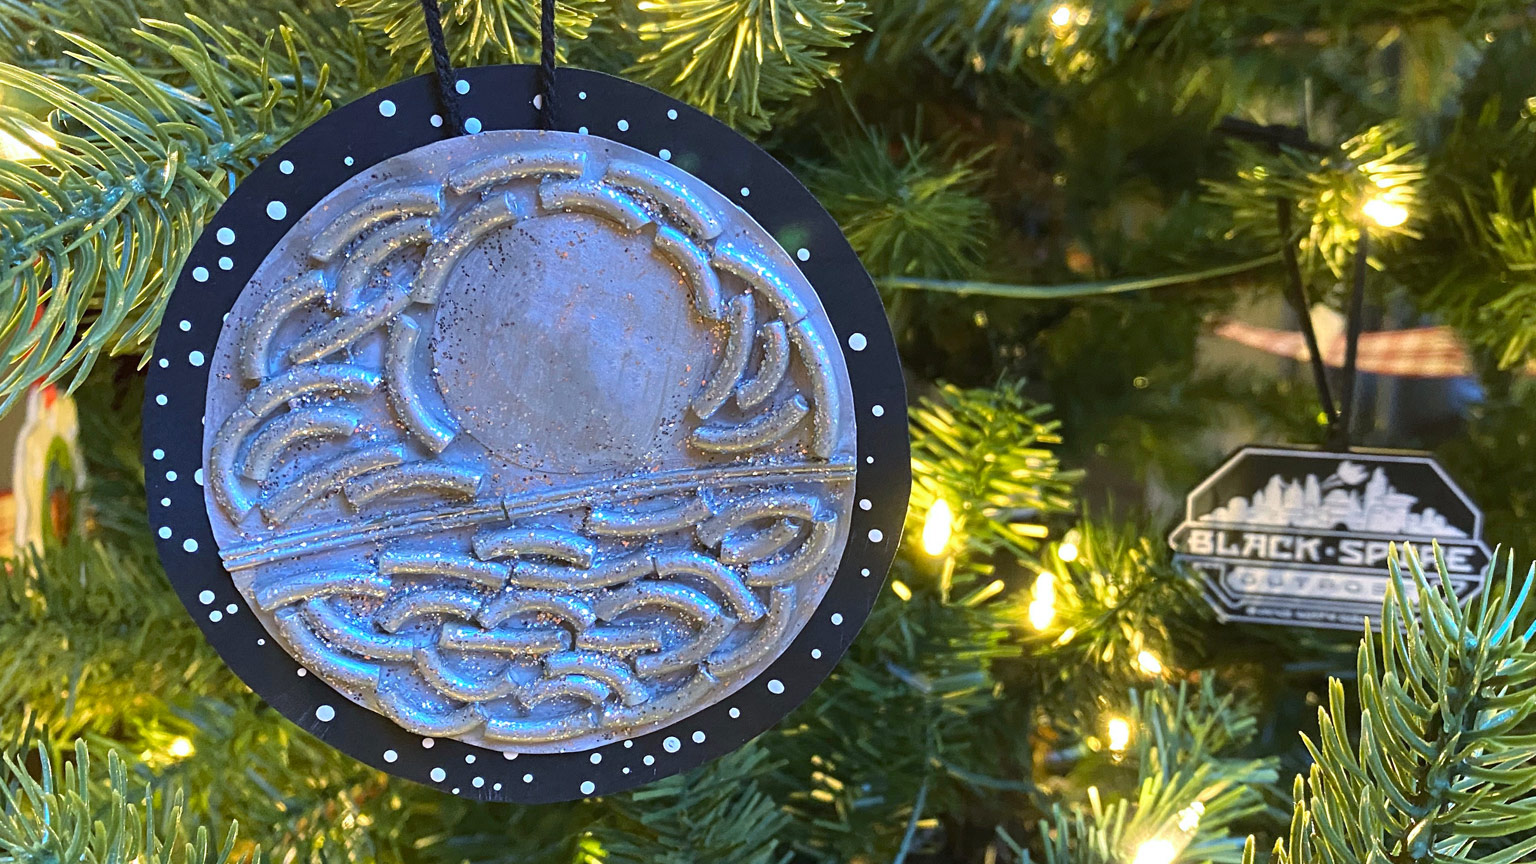 Death Star ornament finished